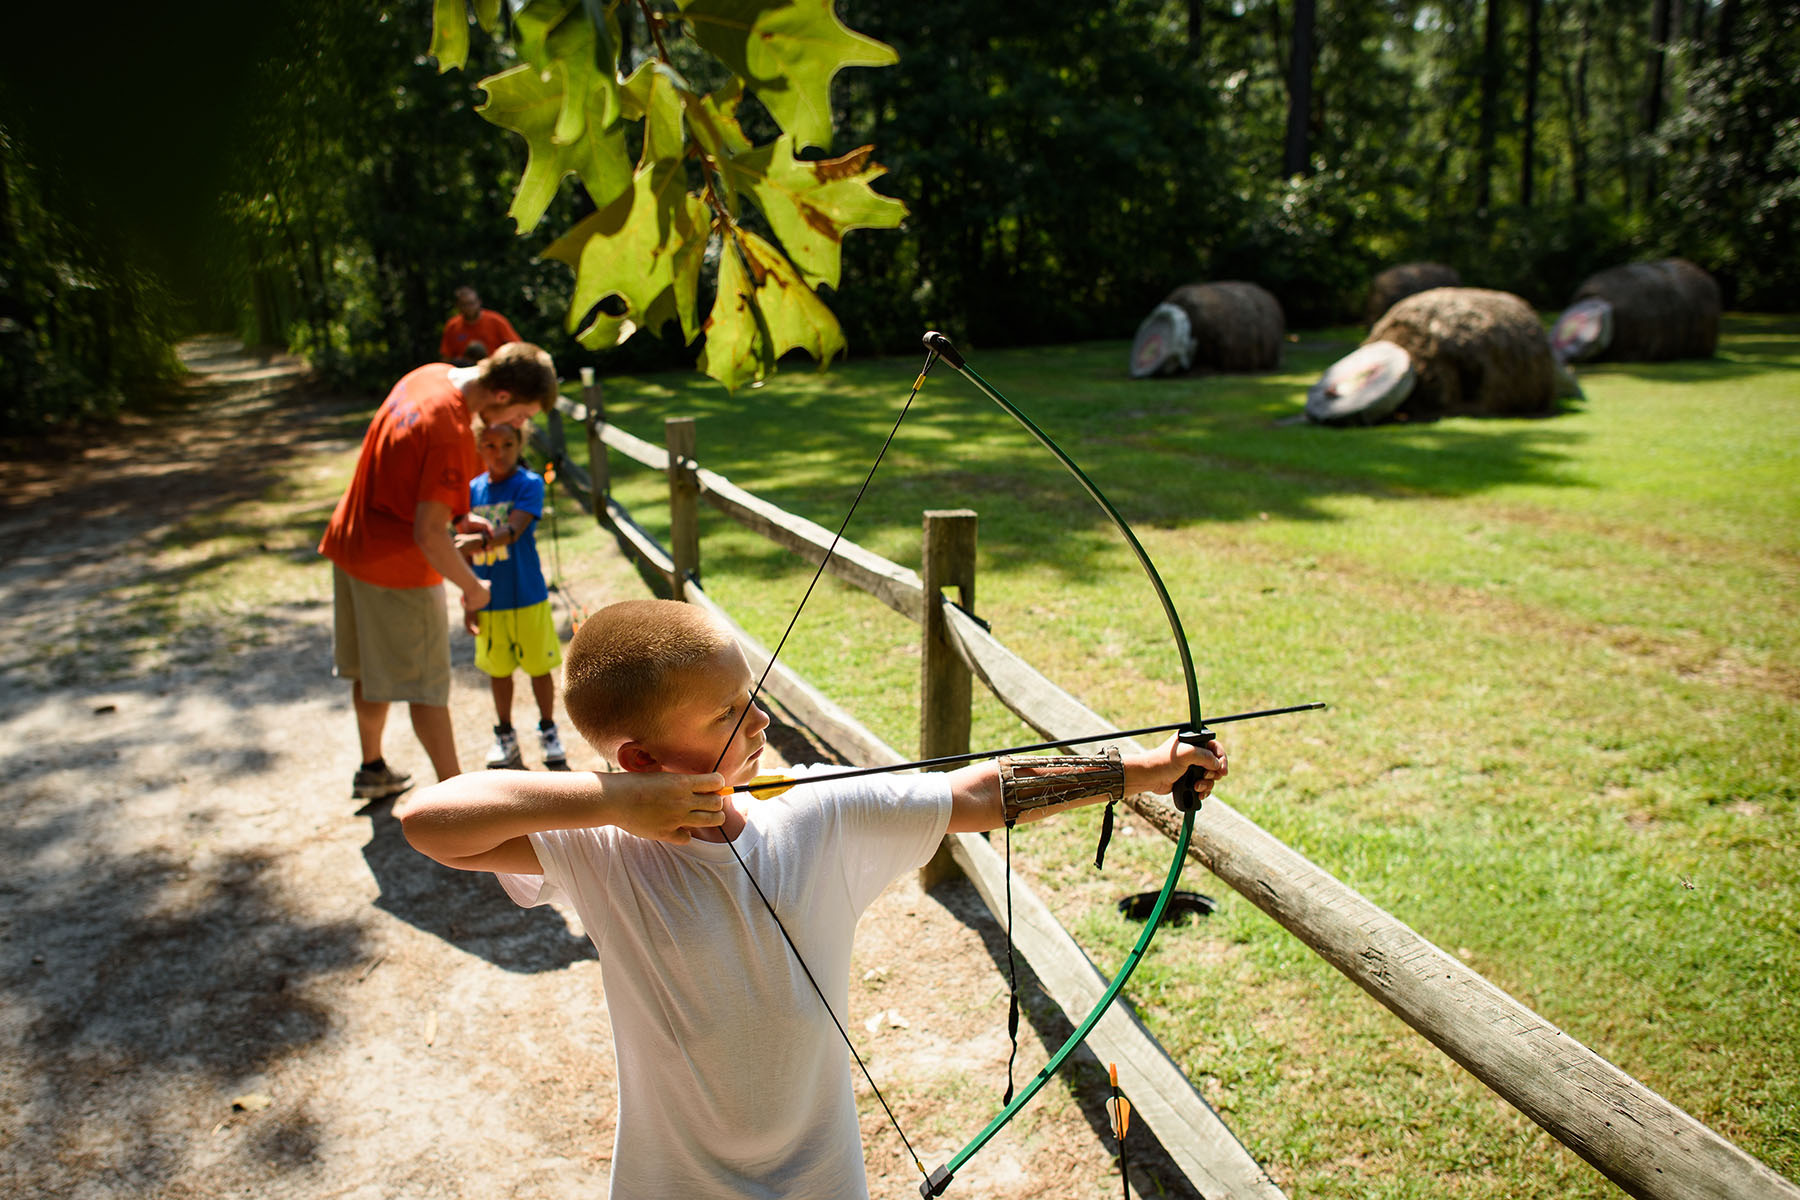 Second Place | Multiple PhotosAndrew Craft, The Fayetteville ObserverCamper Spencer Blay takes aim at his target during an archery activity Monday, July 20, 2015, at Camp Rockfish.